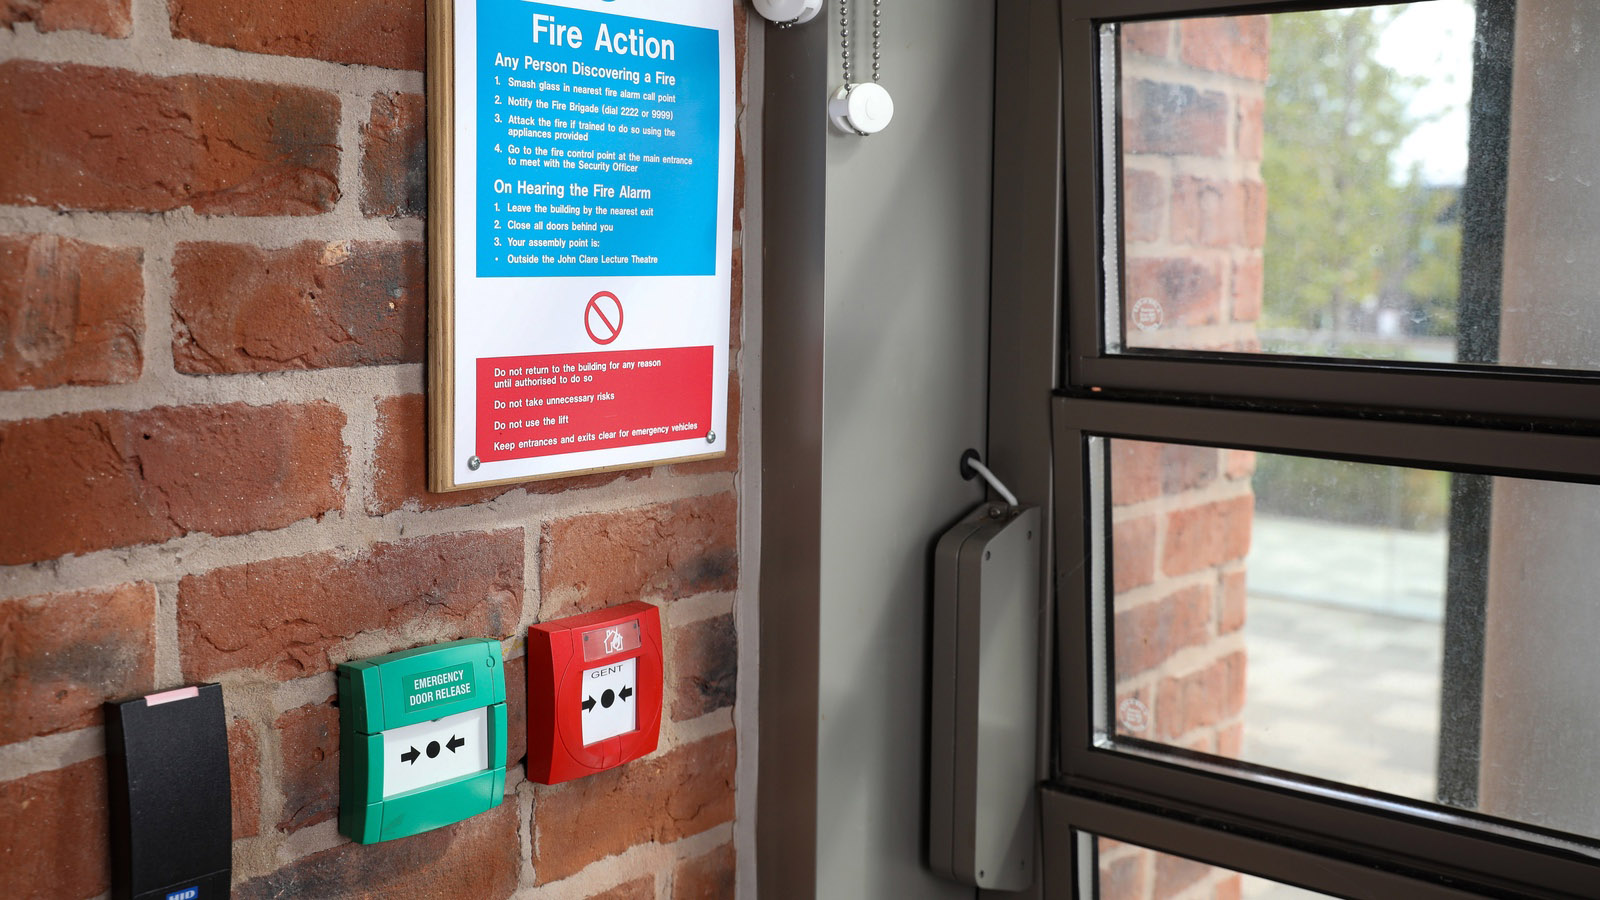 CDS supports Student Fire Safety Week – and says accommodation providers have an important role to play